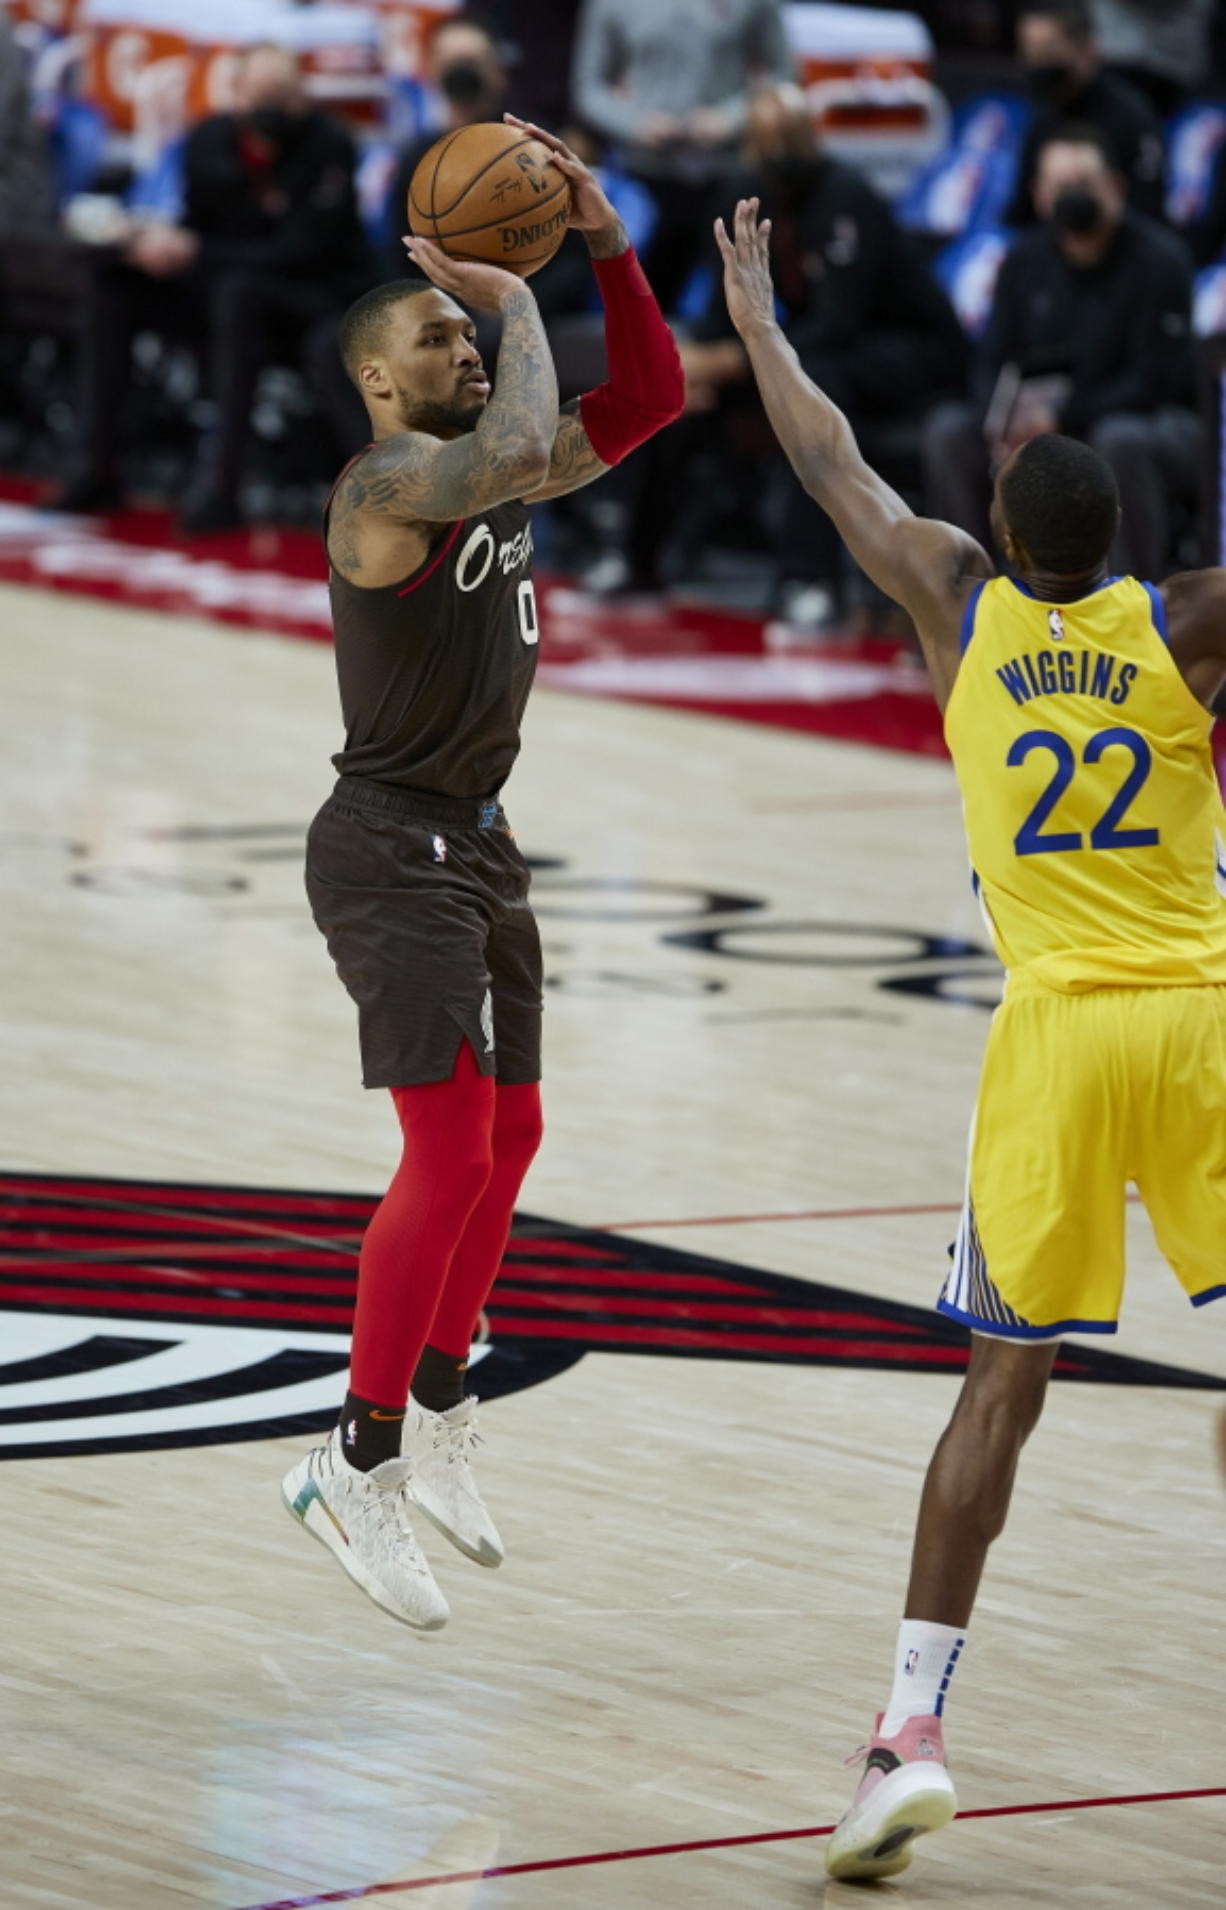 Portland Trail Blazers guard Damian Lillard shoots a 3-point basket over Golden State Warriors forward Andrew Wiggins during the second half of an NBA basketball game in Portland, Ore., Wednesday, March 3, 2021.